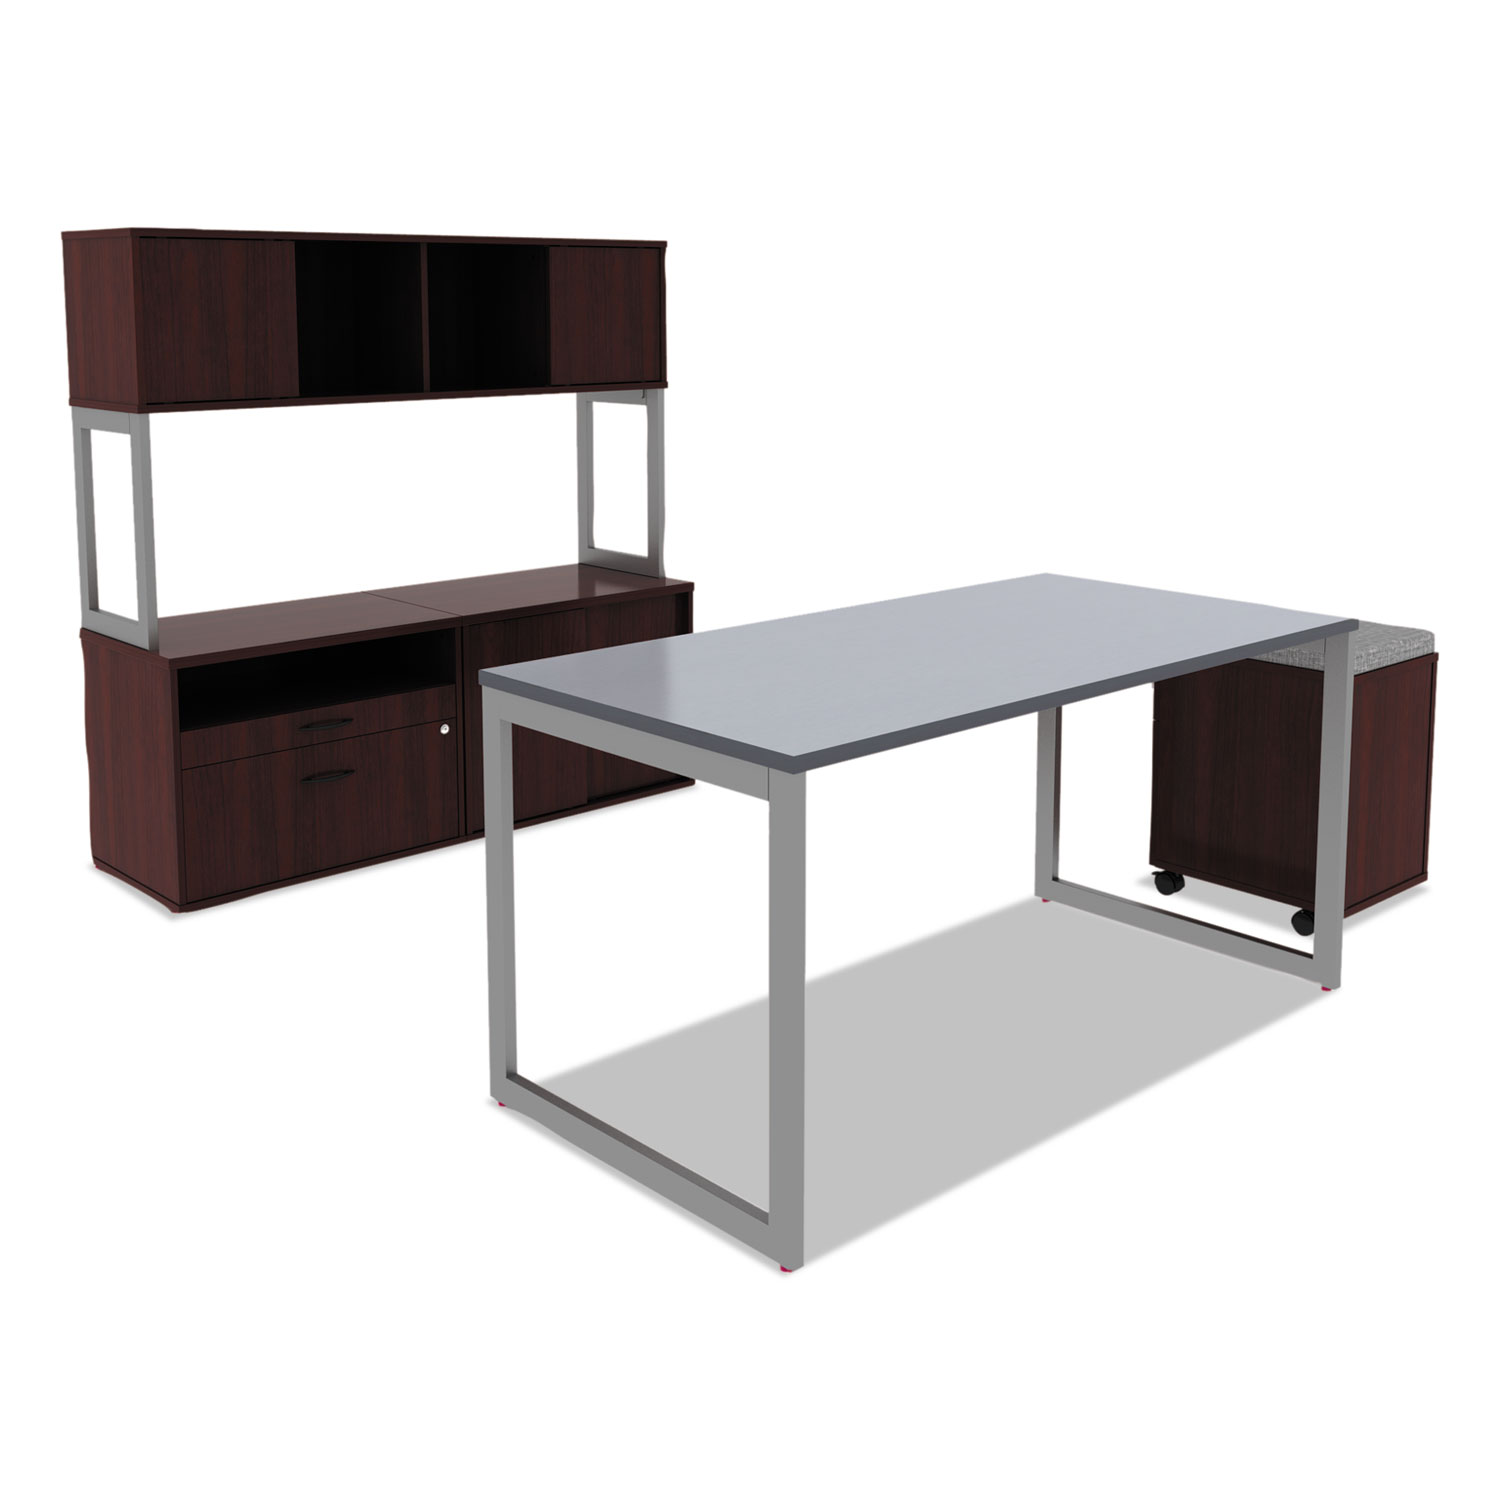 Alera Open Office Series Low File Cab Cred 29 1 2 X 19 8 22 7 Mahogany